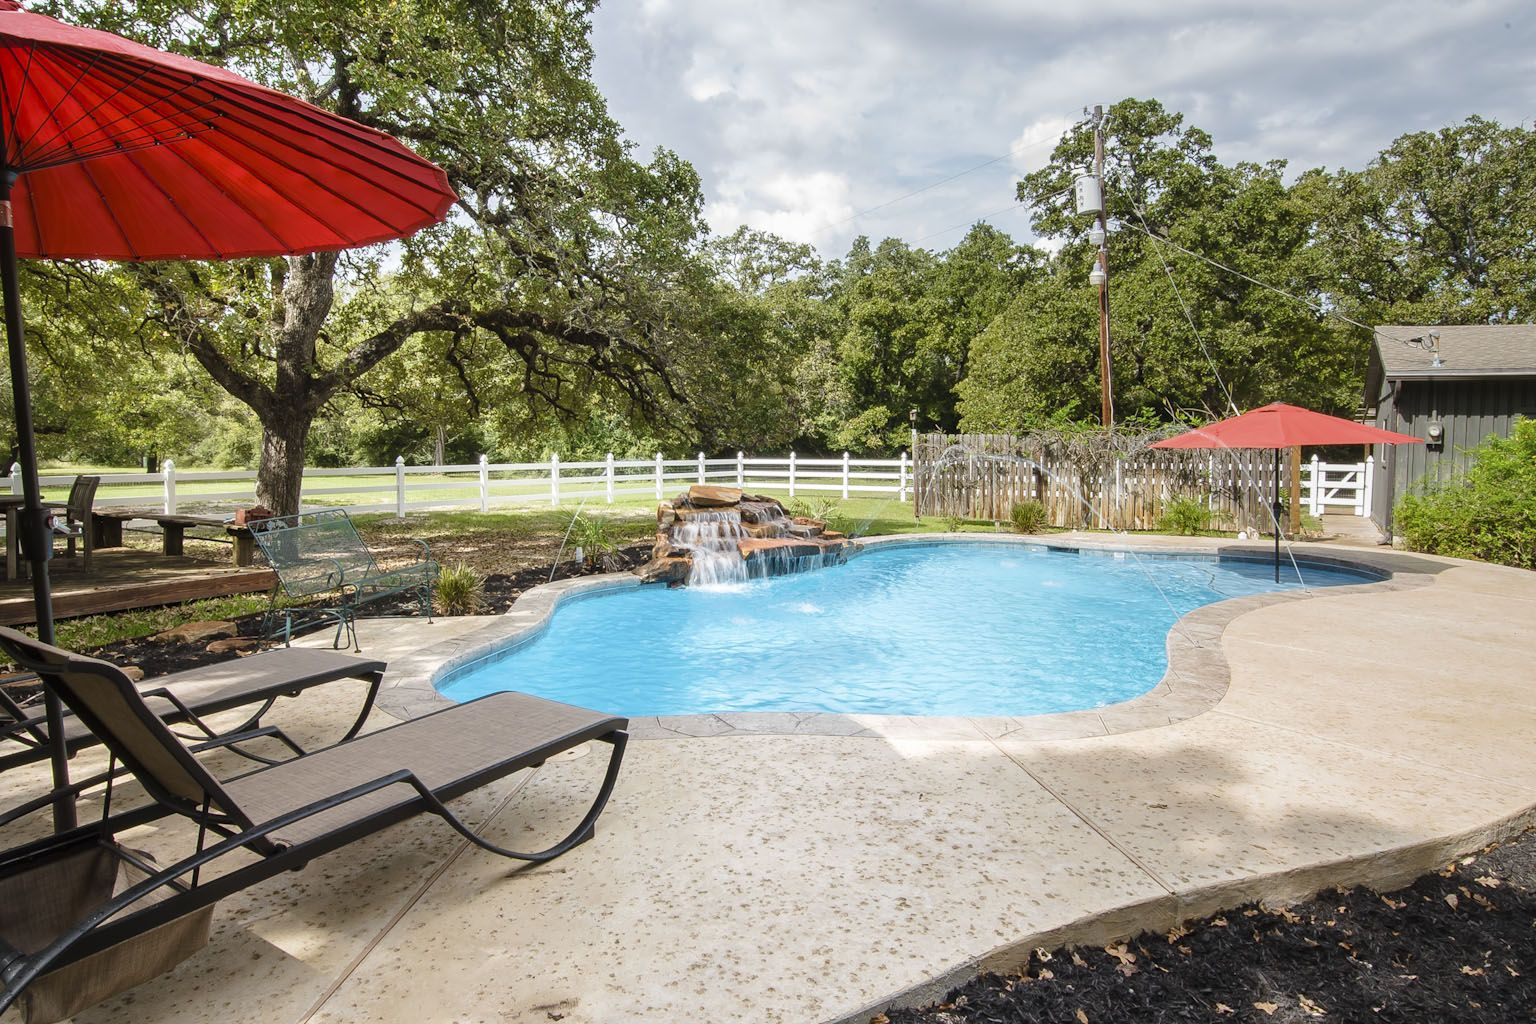 Sunshine Fun Pools 4200 State Highway 6 South College